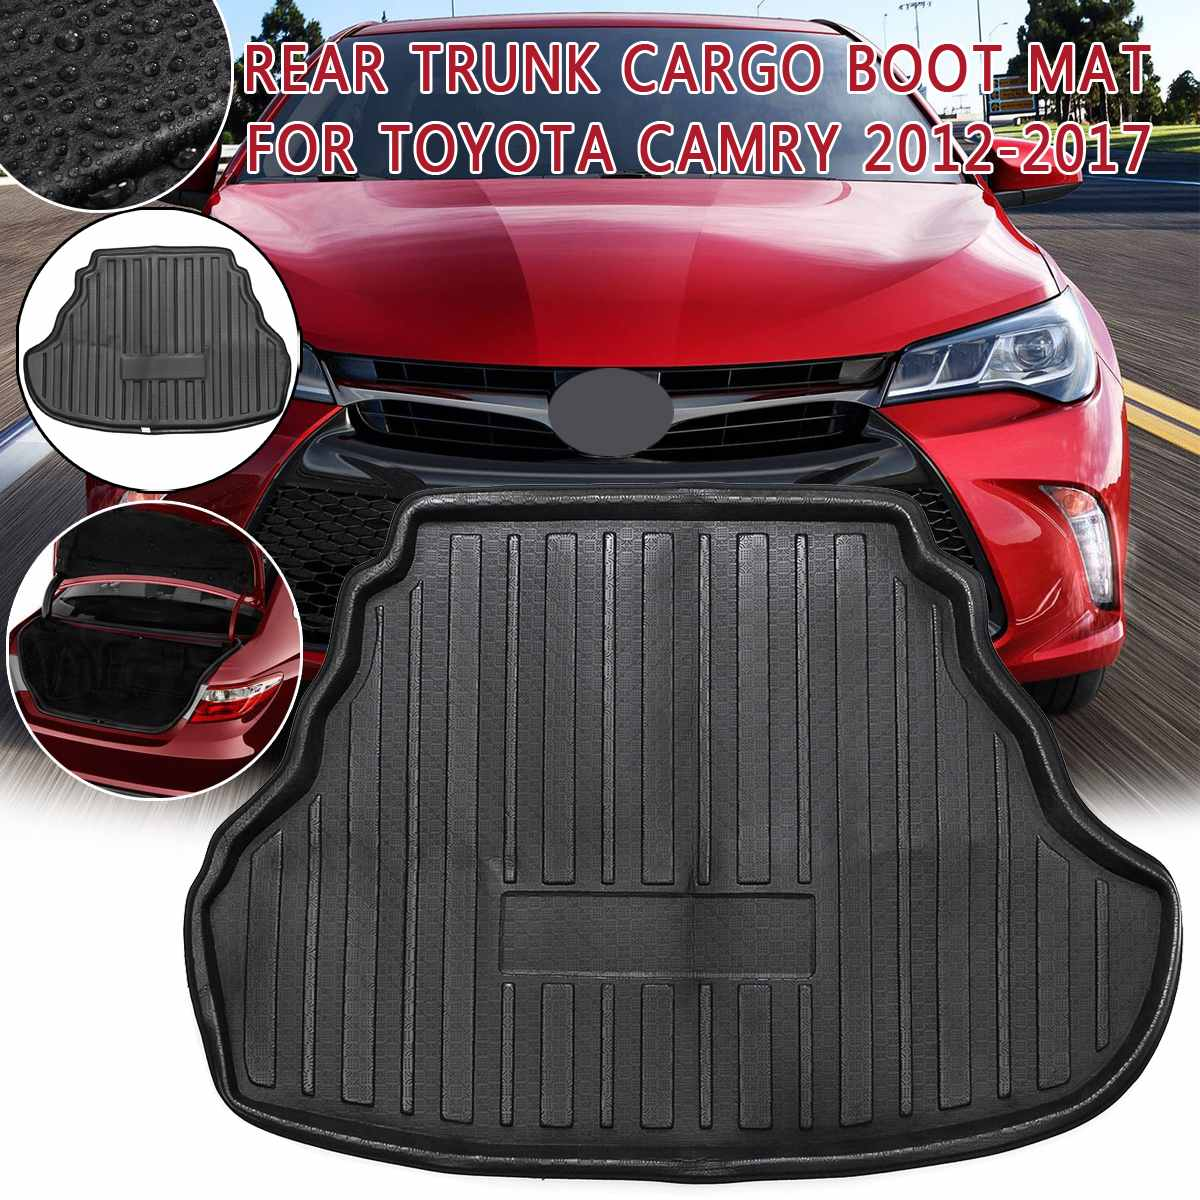 Car Cargo Boot Liner For Toyota Camry 2012 2013 2014-2017 Rear Trunk Floor Mat Tray Carpet Mud Protective Pad Auto Accessories